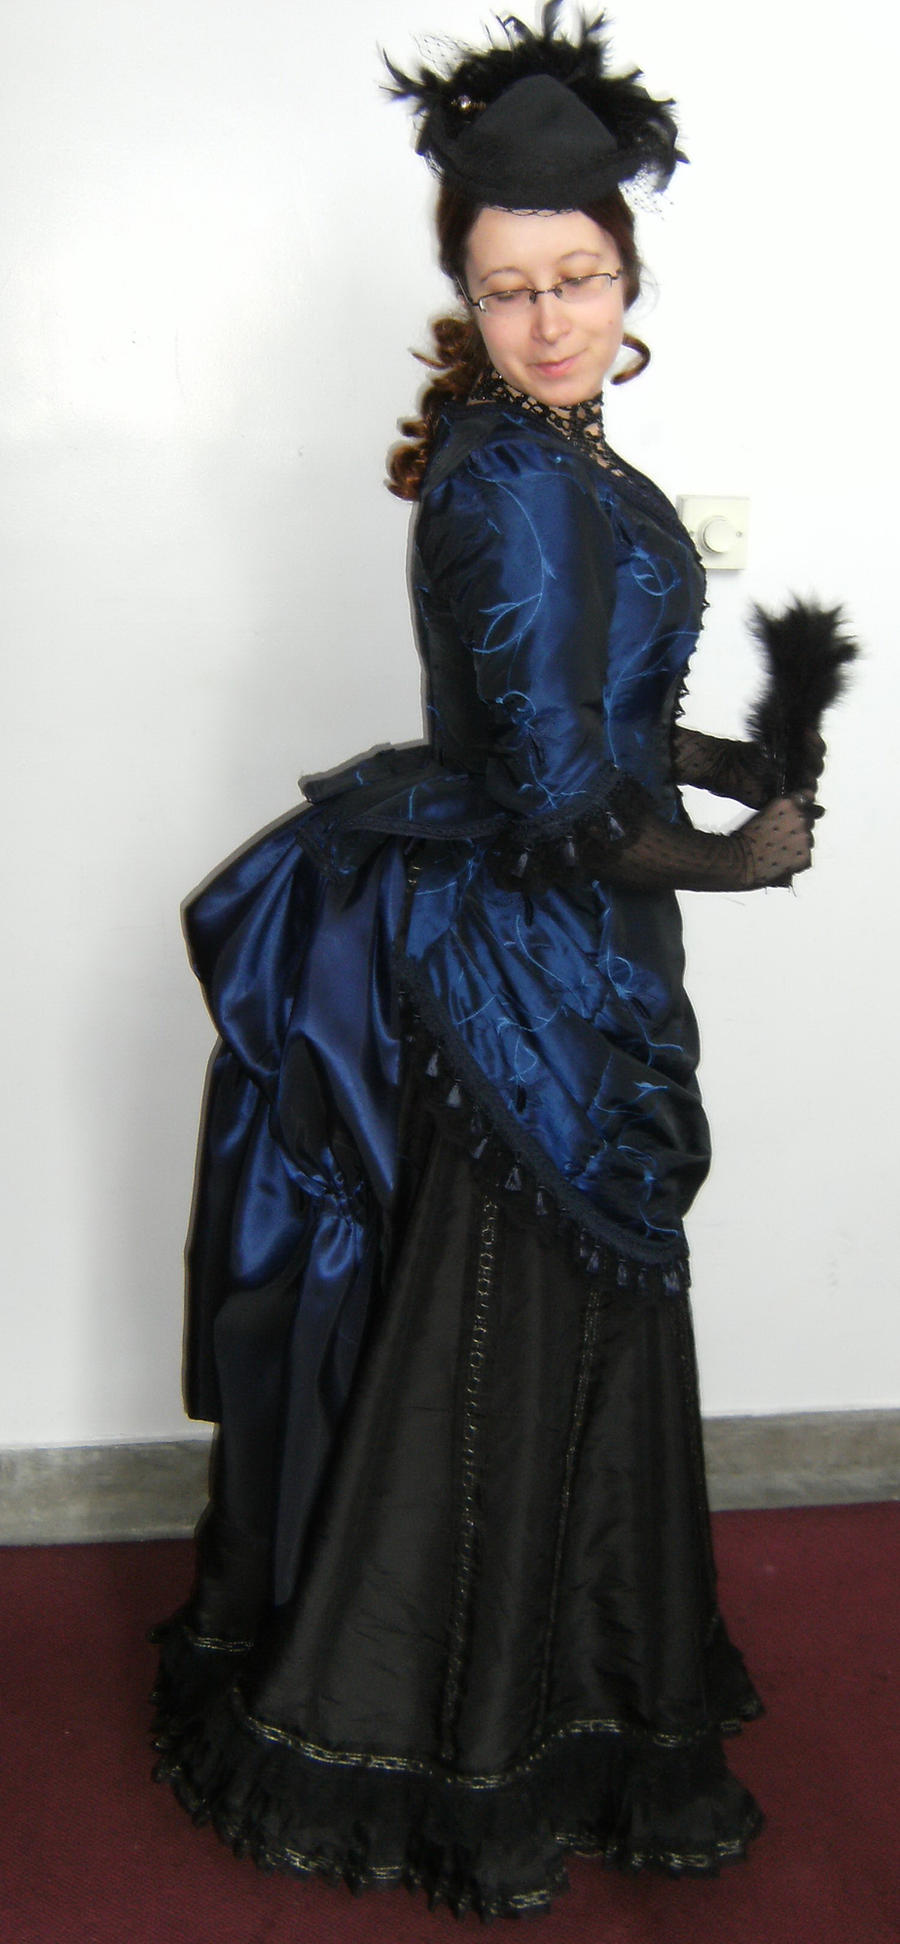 Costumes Victorian Bustle Dress Gowns 1900 Reenacting dress andVictorian Bustle